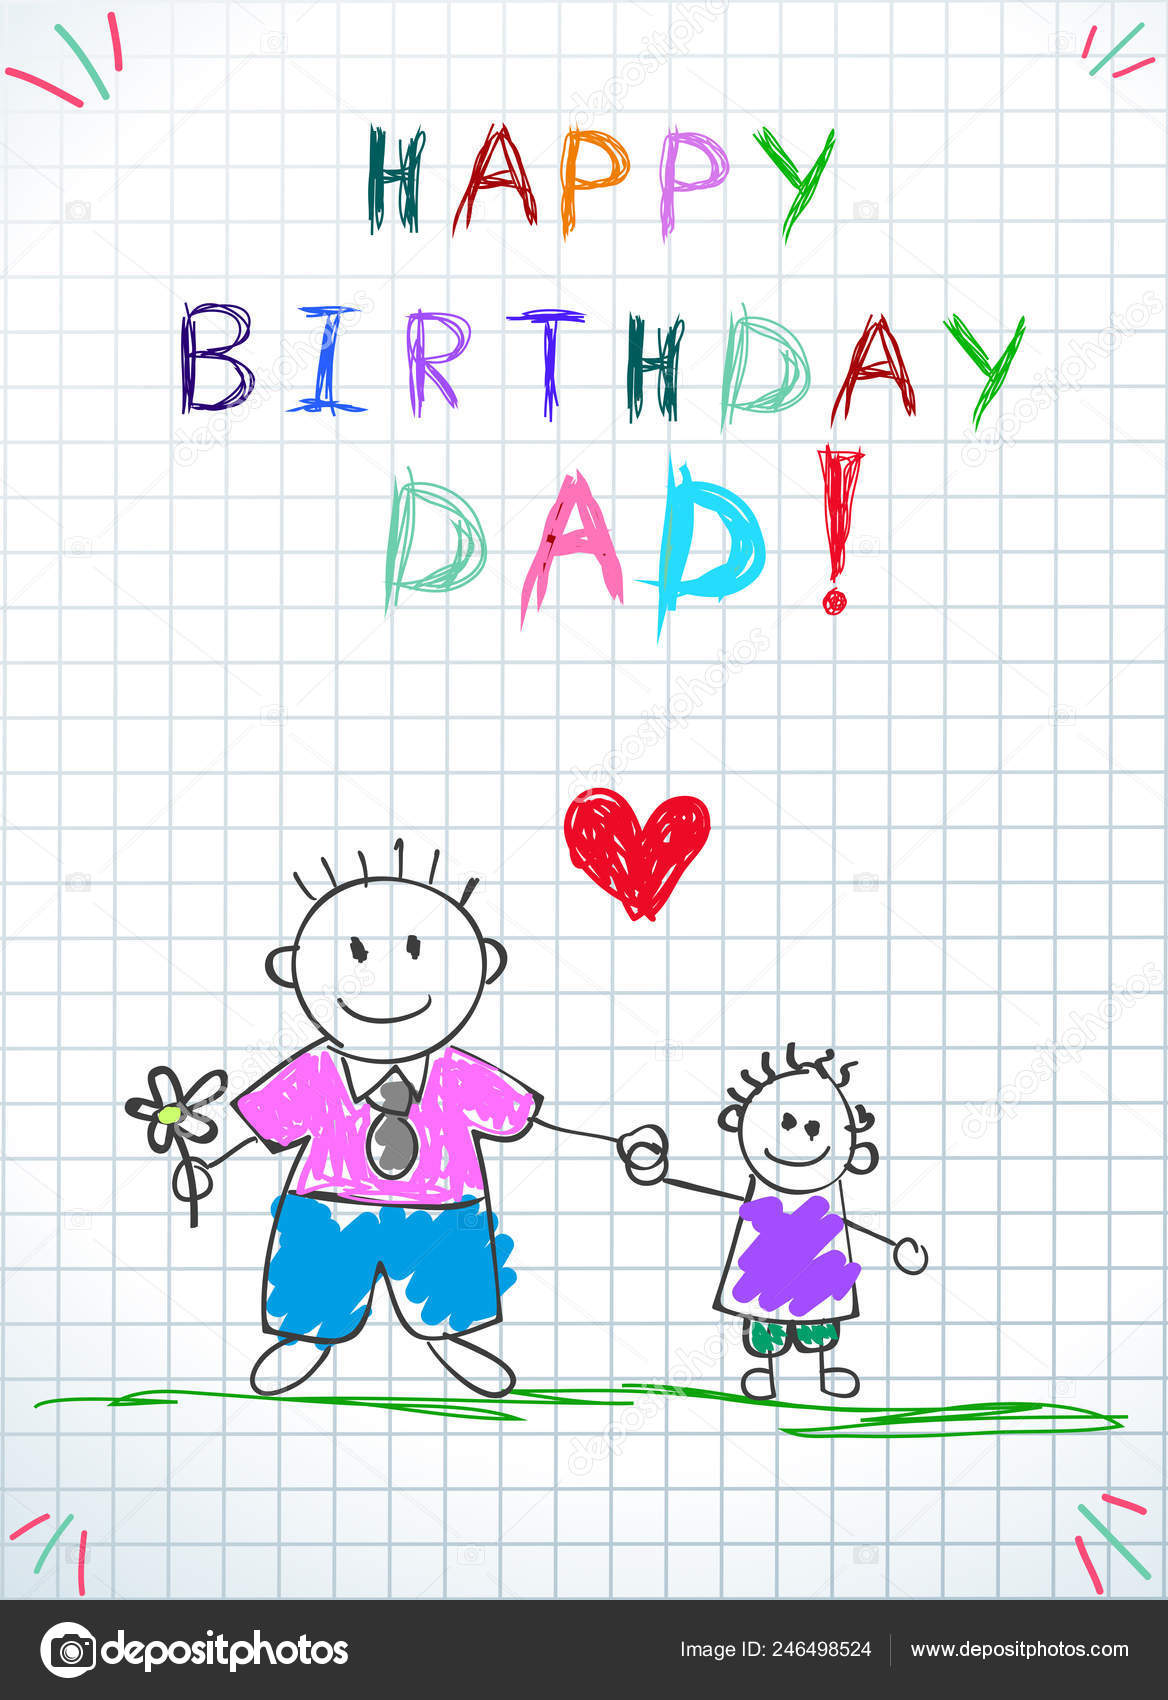 Happy Birthday Dad Children Colorful Hand Drawn Illustration Of Father And Son Together Hold Flowers Heart Between Squared Notebook Sheet Paper Baby